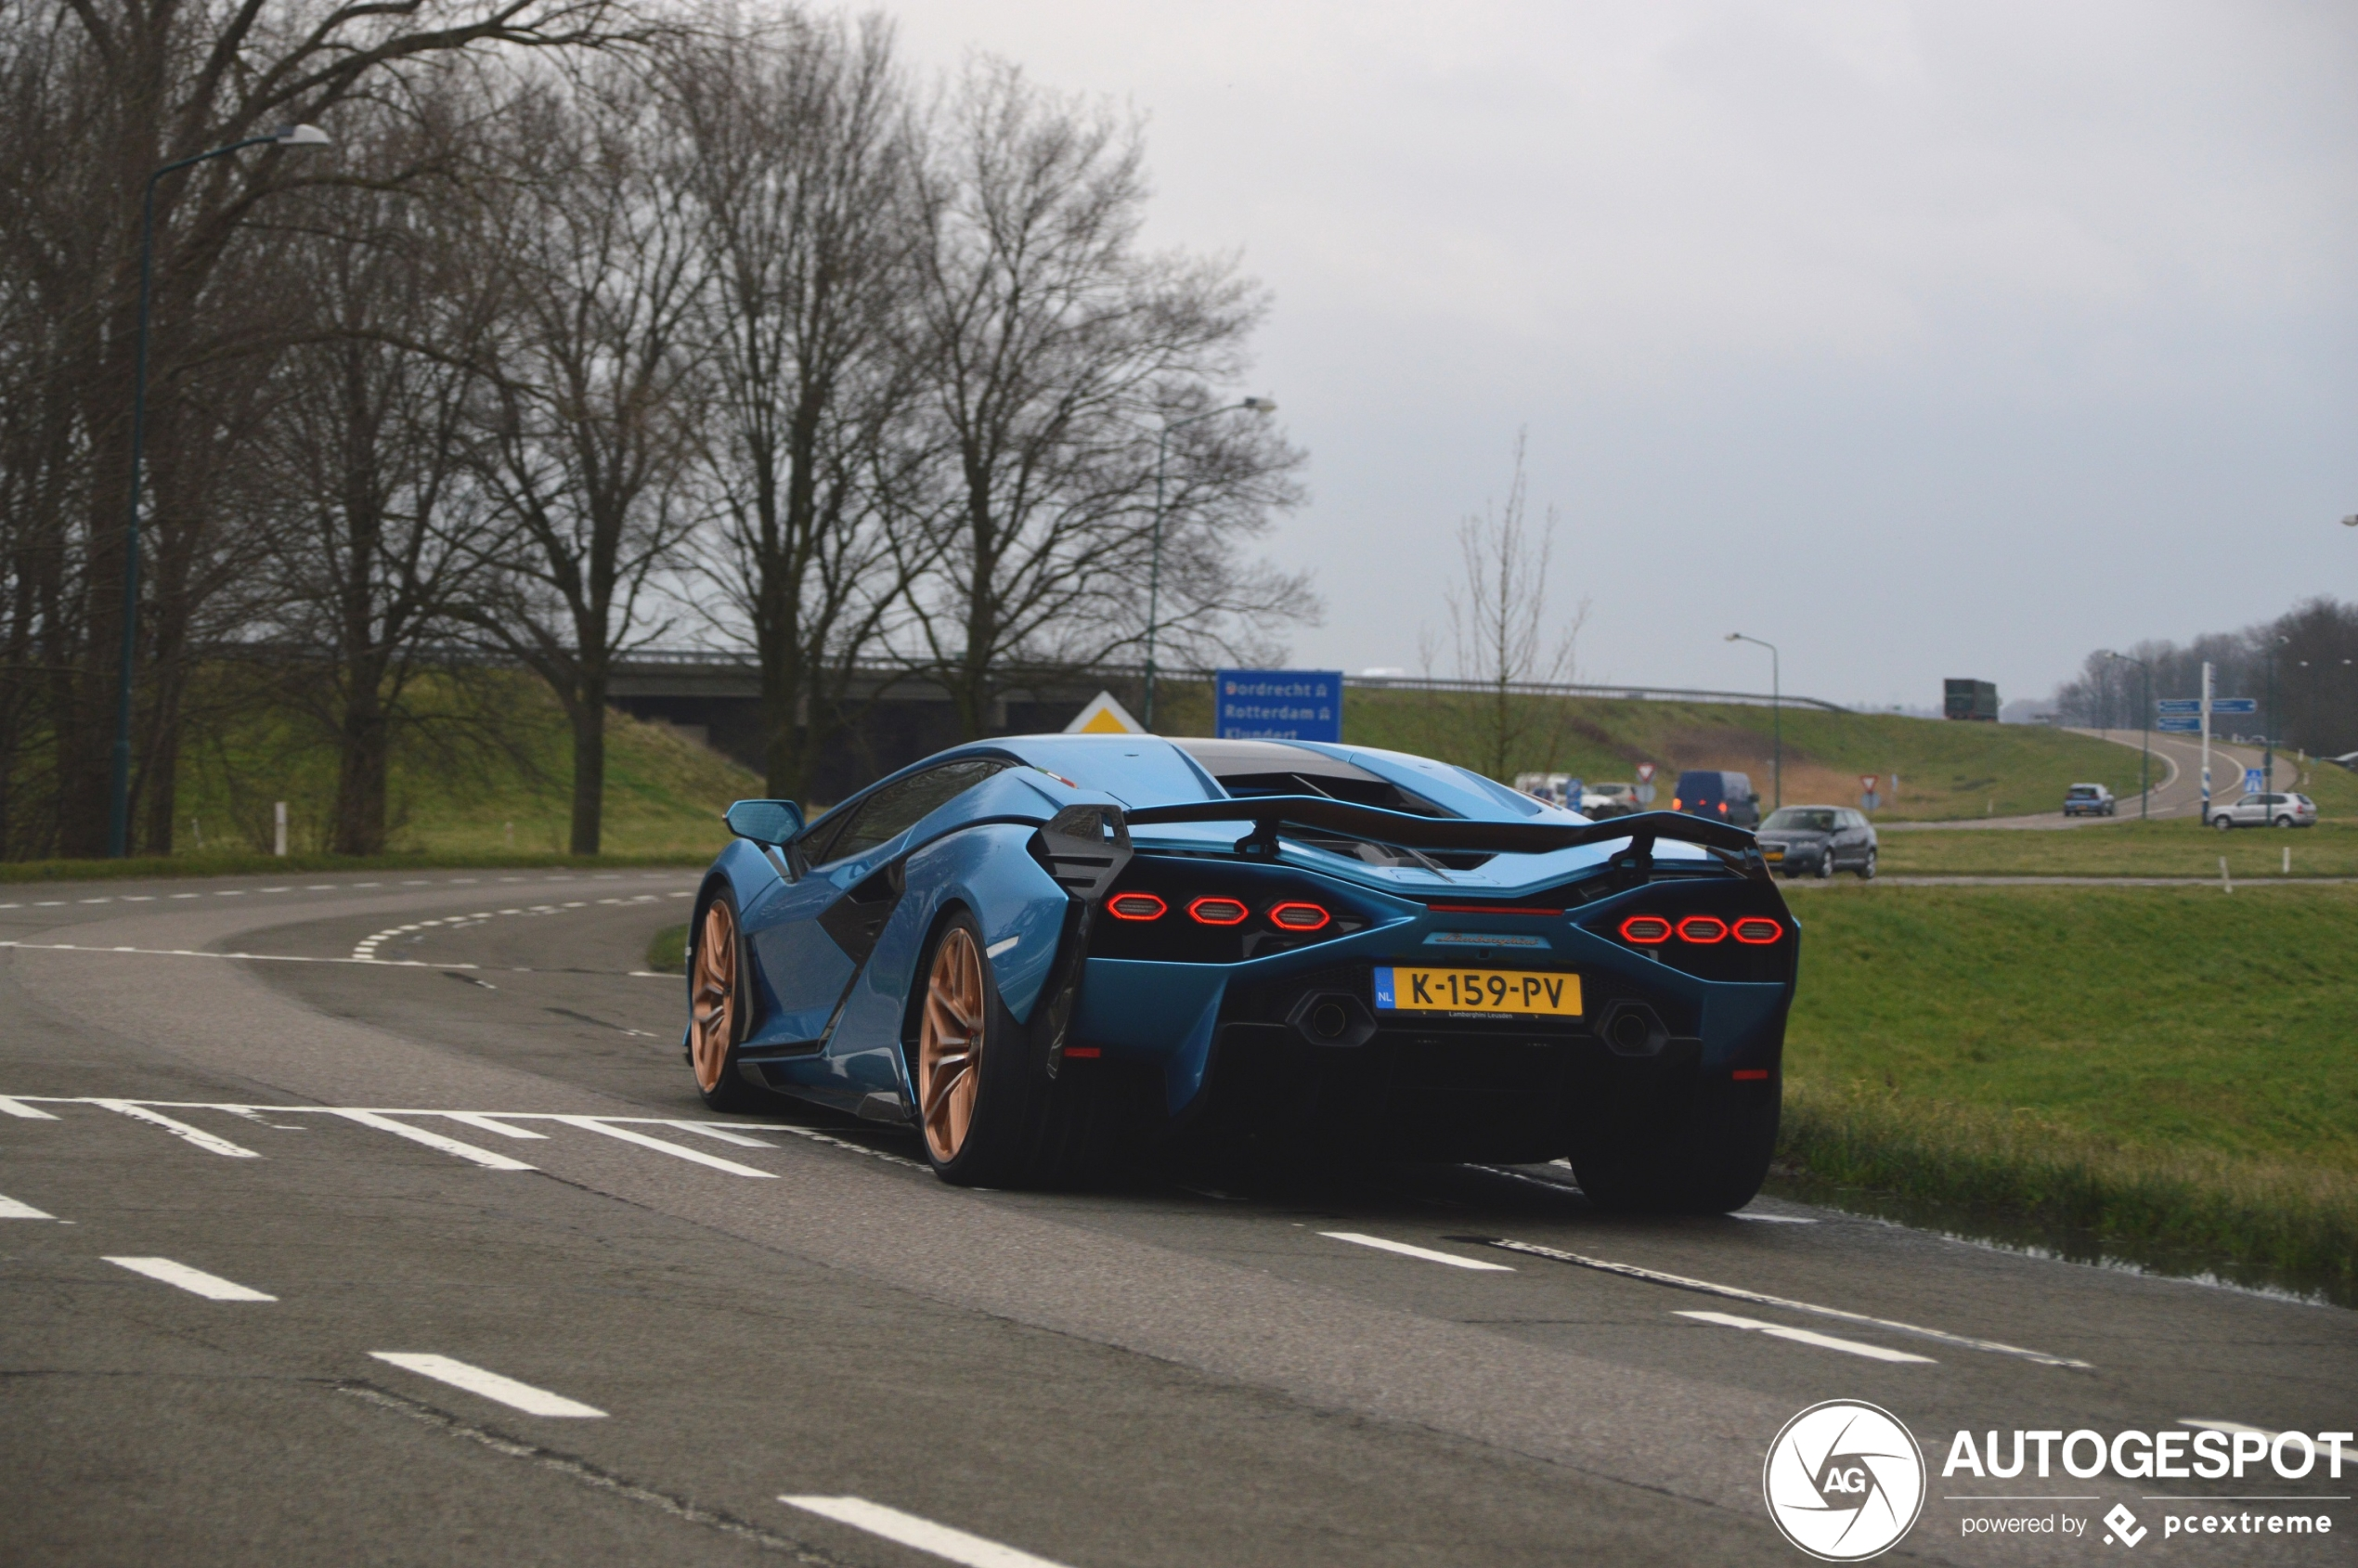 Absurd Lamborghini Sián FKP 37 arrived in the Netherlands